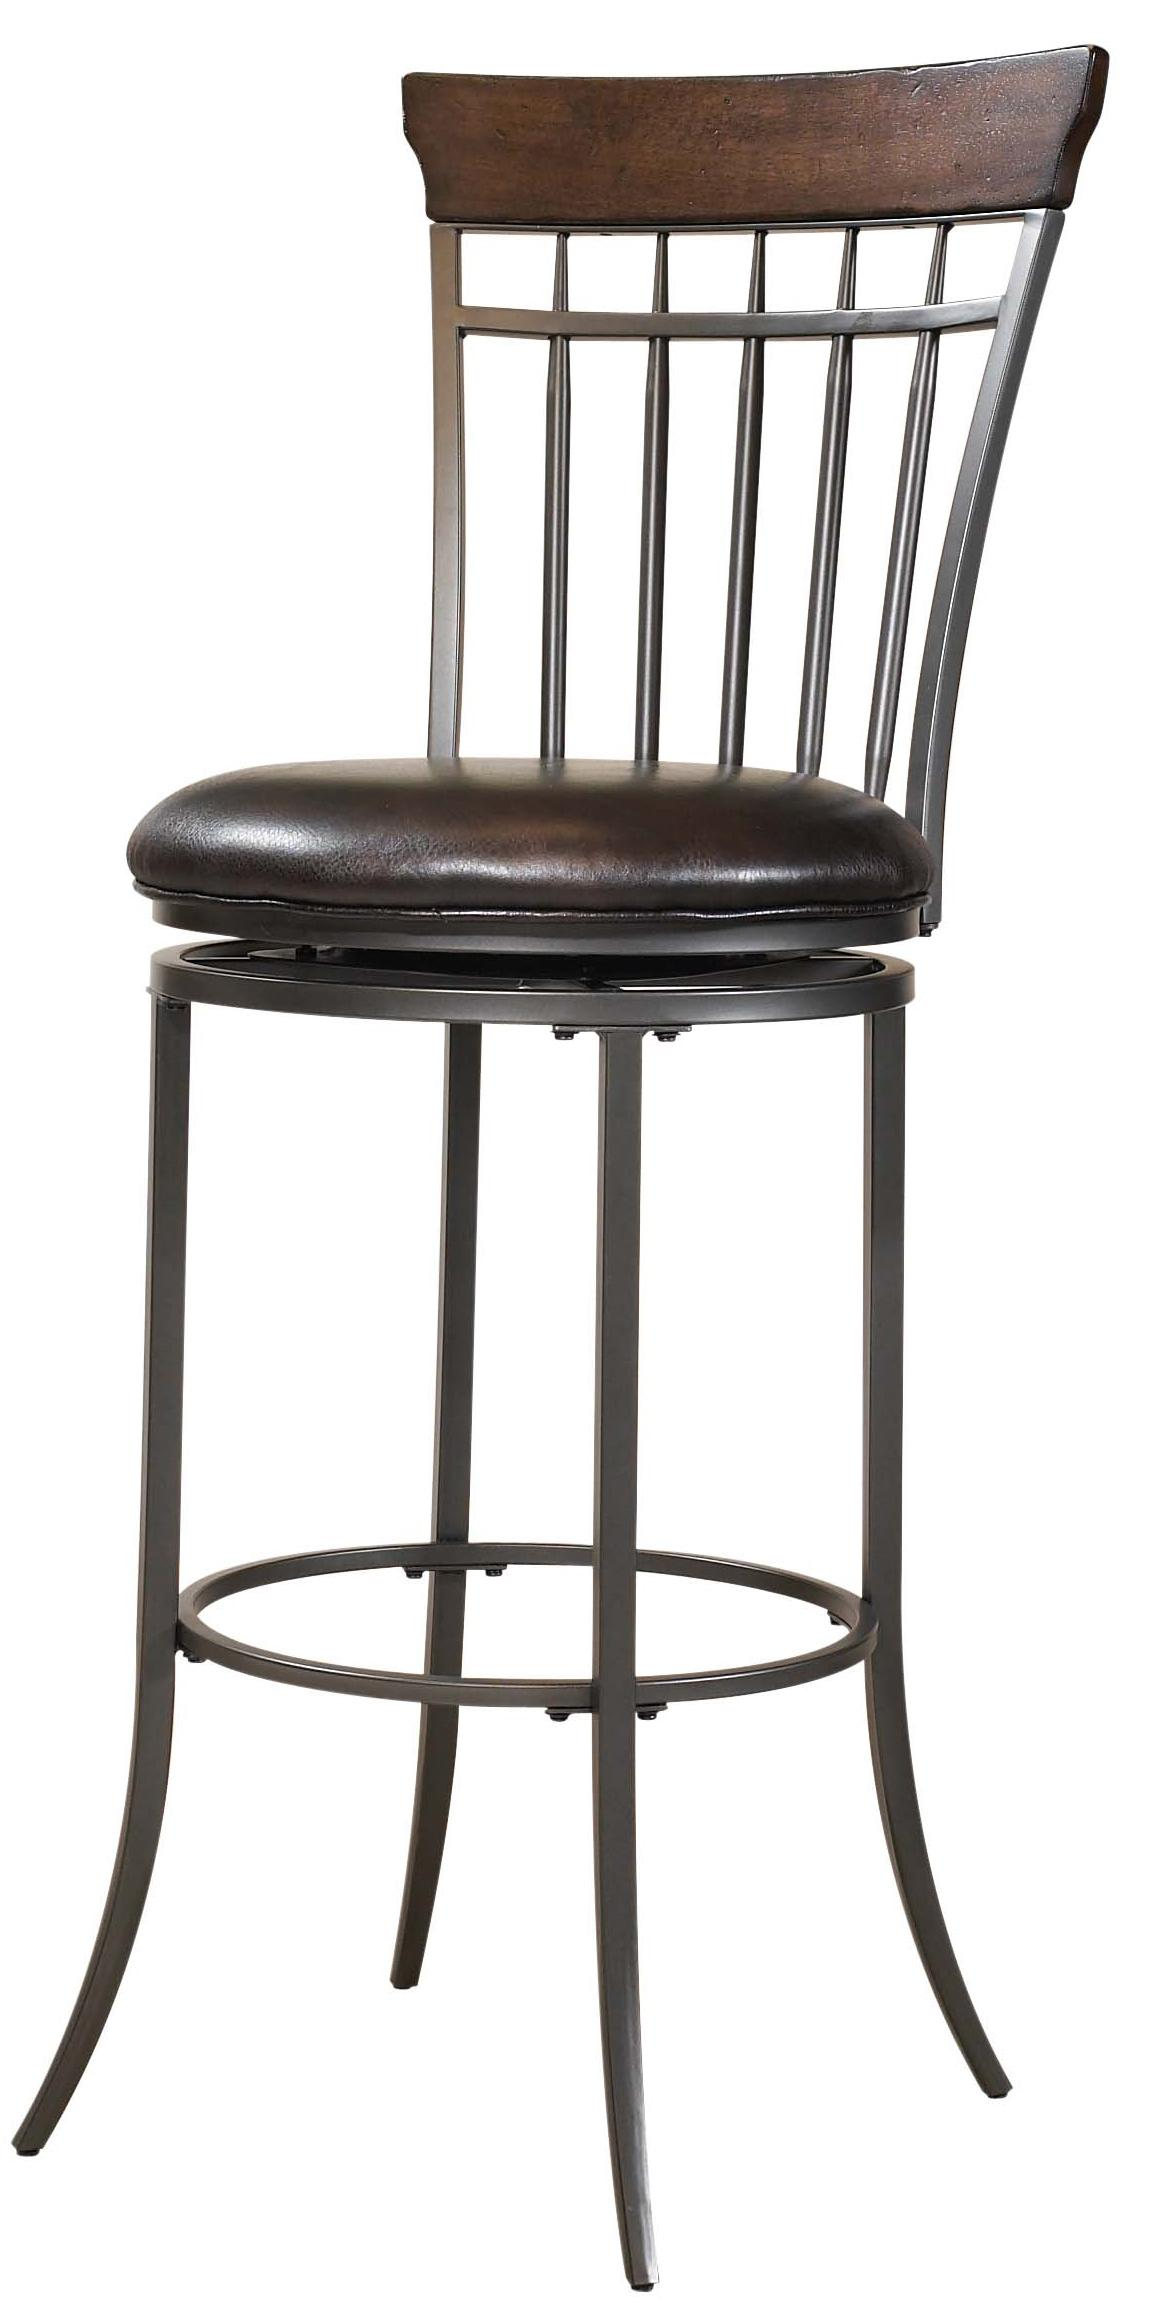 Cameron Swivel Spindle Back Bar Stool